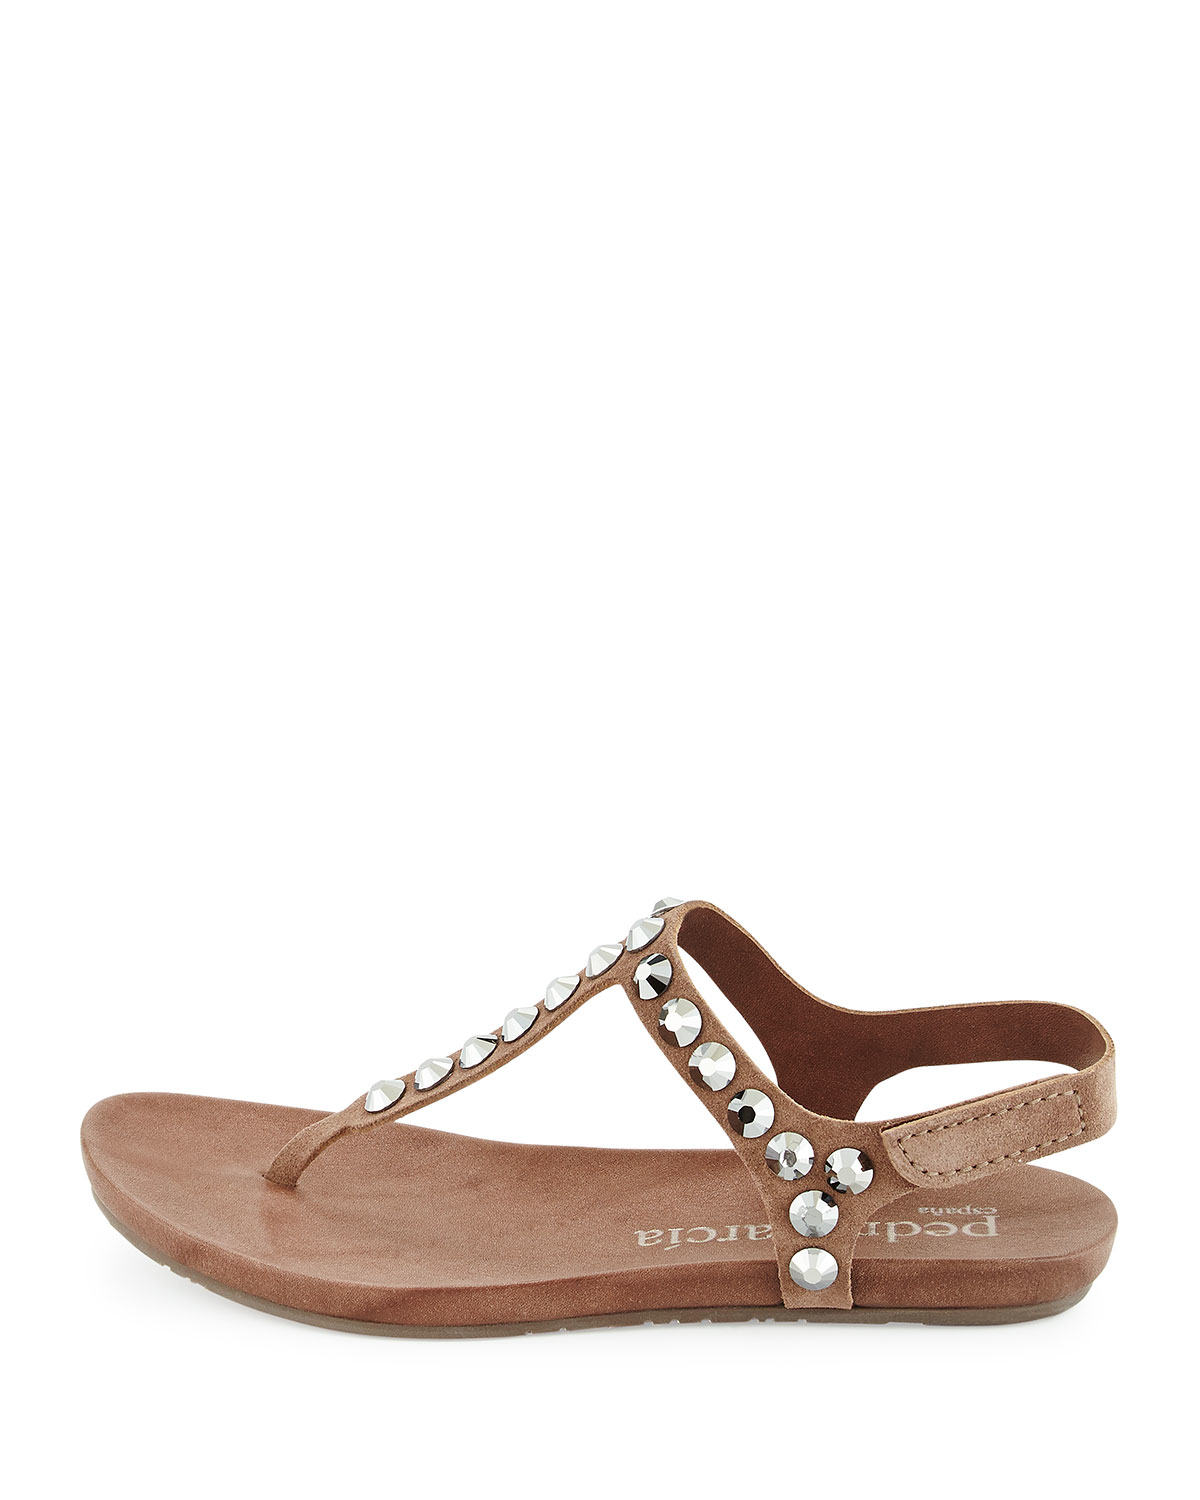 free shipping eastbay official site Pedro Garcia Suede Embellished Sandals original for sale 7TvsWP